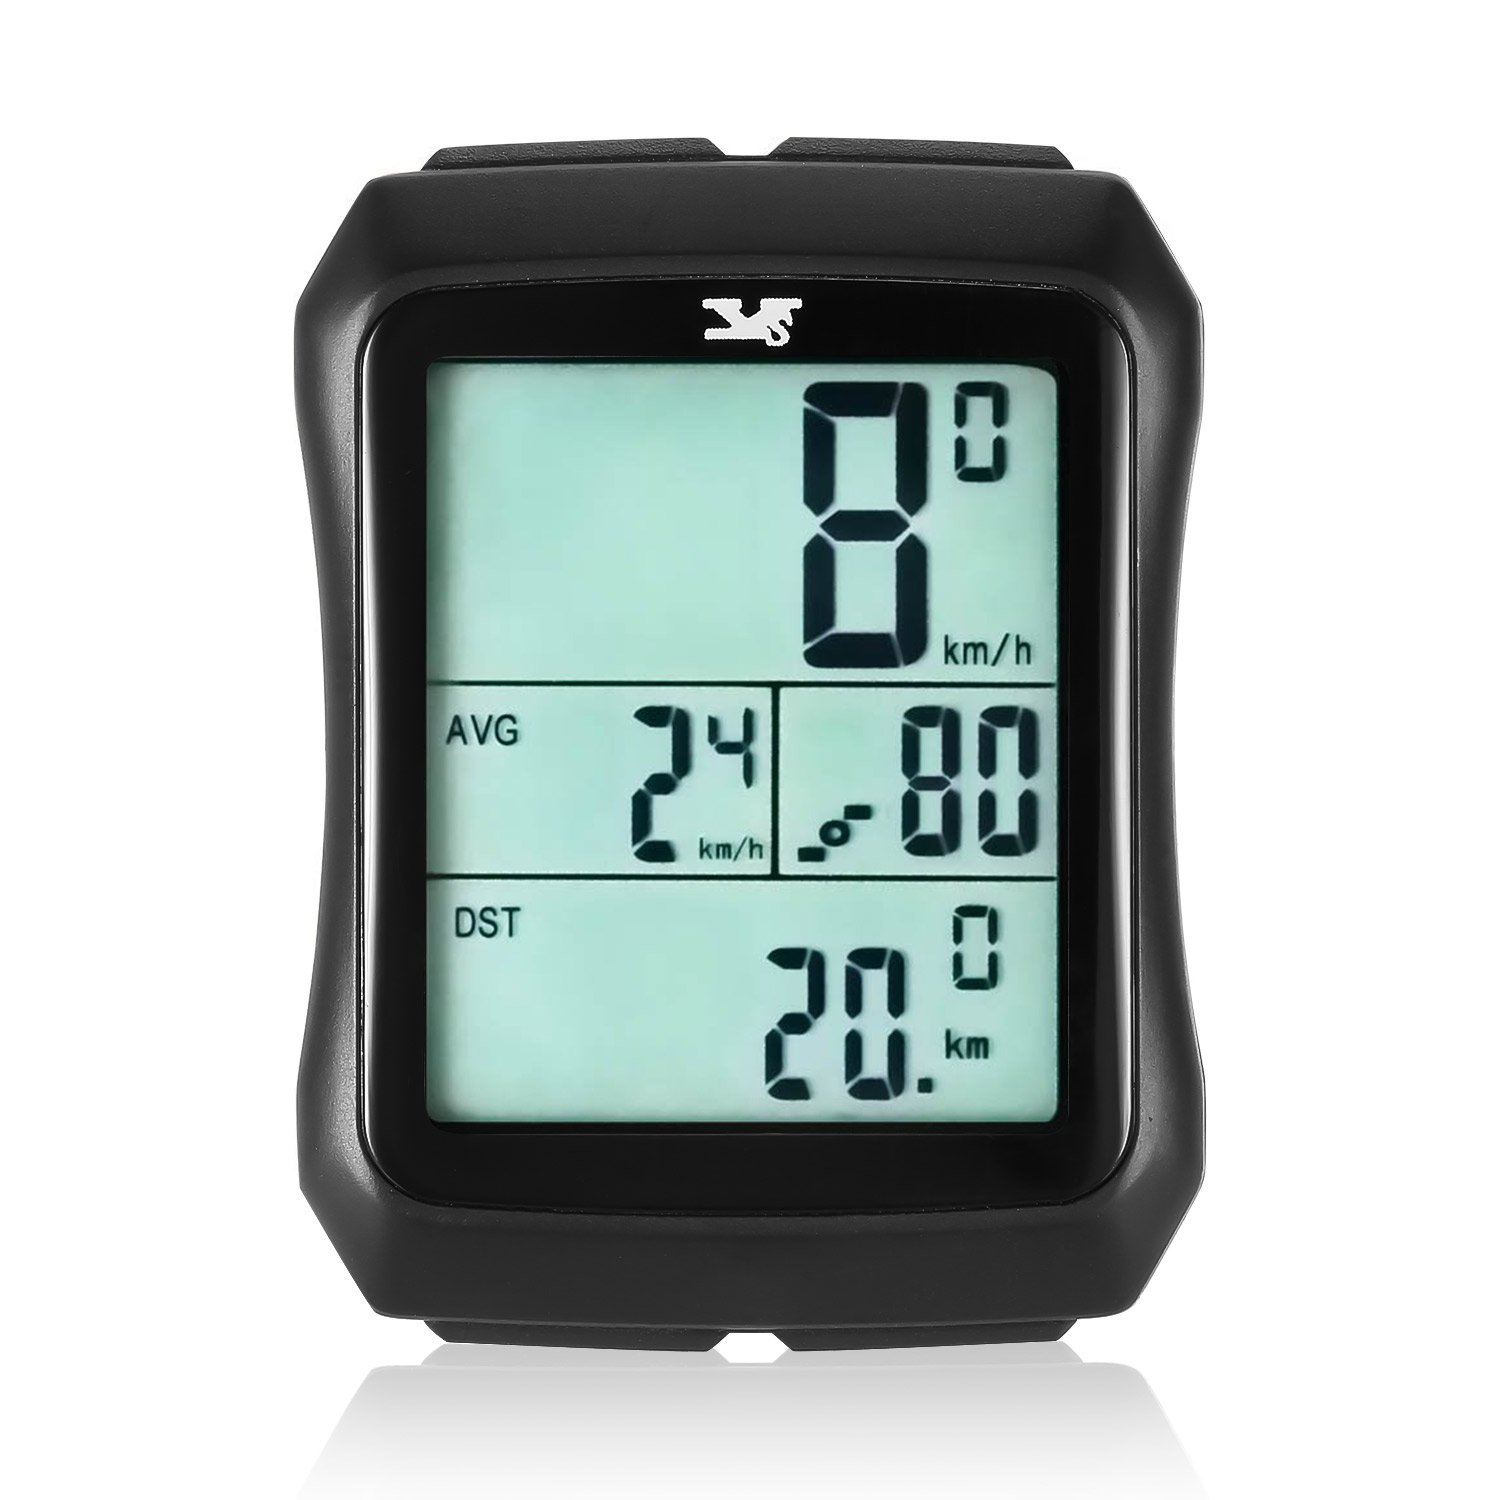 Sospers Bike Computer Waterproof, Wireless Speedometer Cadence, Bicycle Odometer Multi-function Large Screen LCD Display